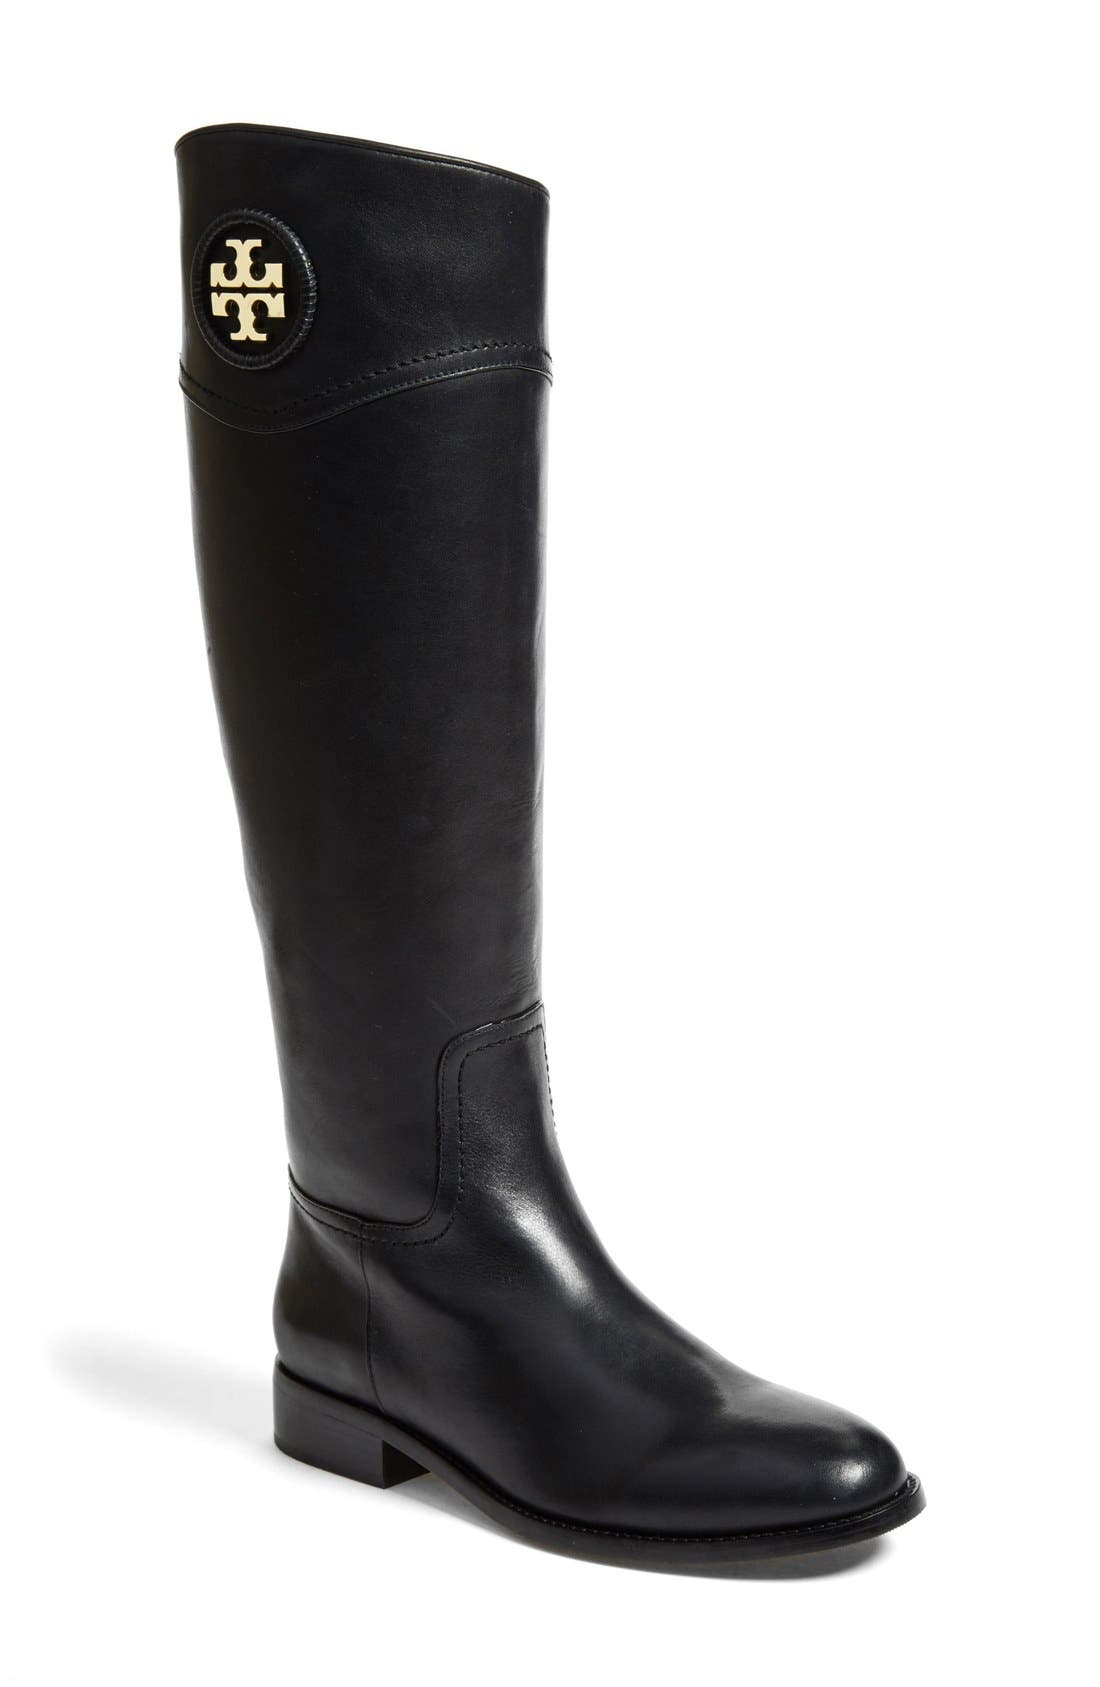 Main Image - Tory Burch 'Ashlynn' Wide Calf Riding Boot (Women)